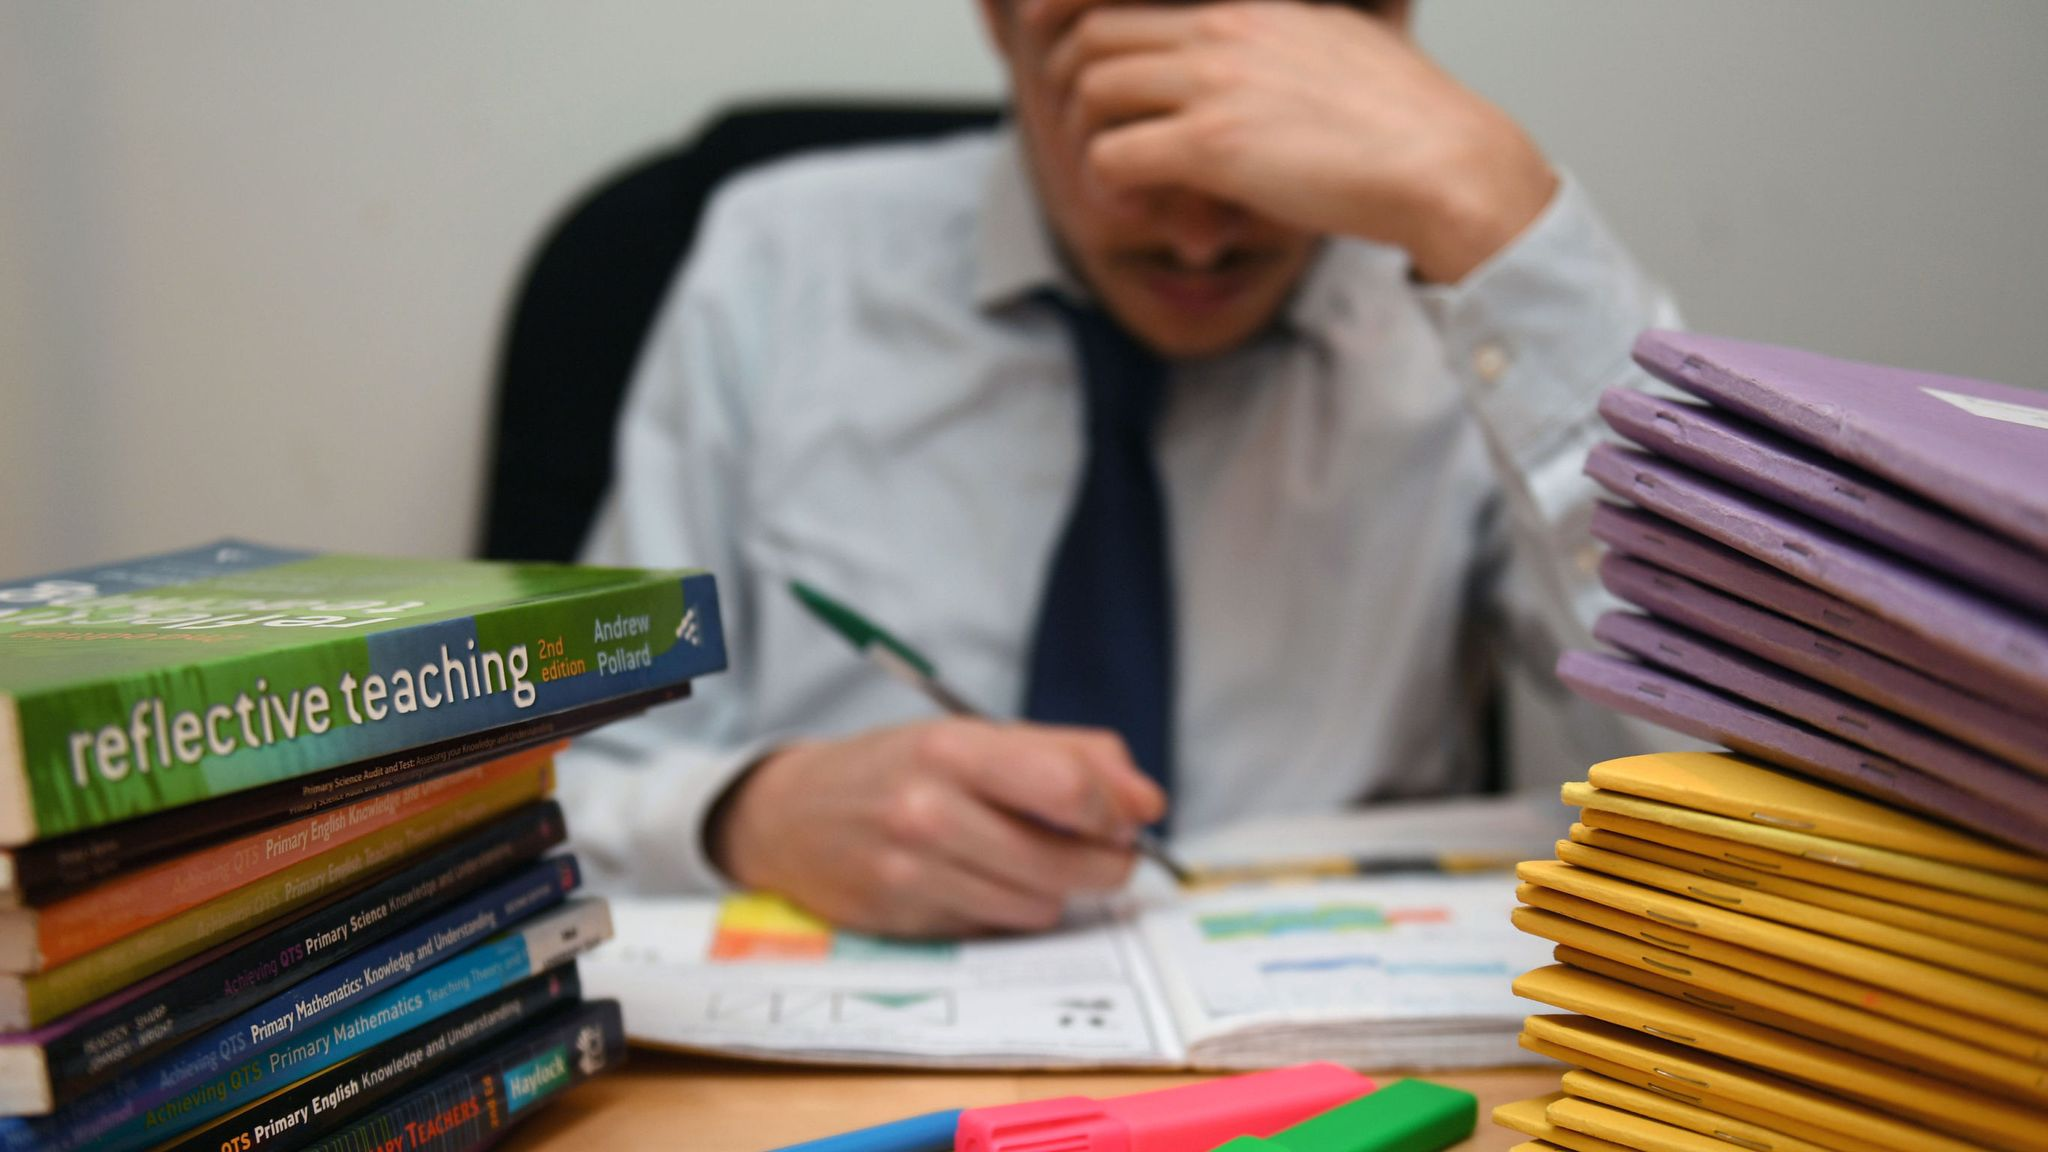 Teachers quitting profession because of bullying by colleagues in schools